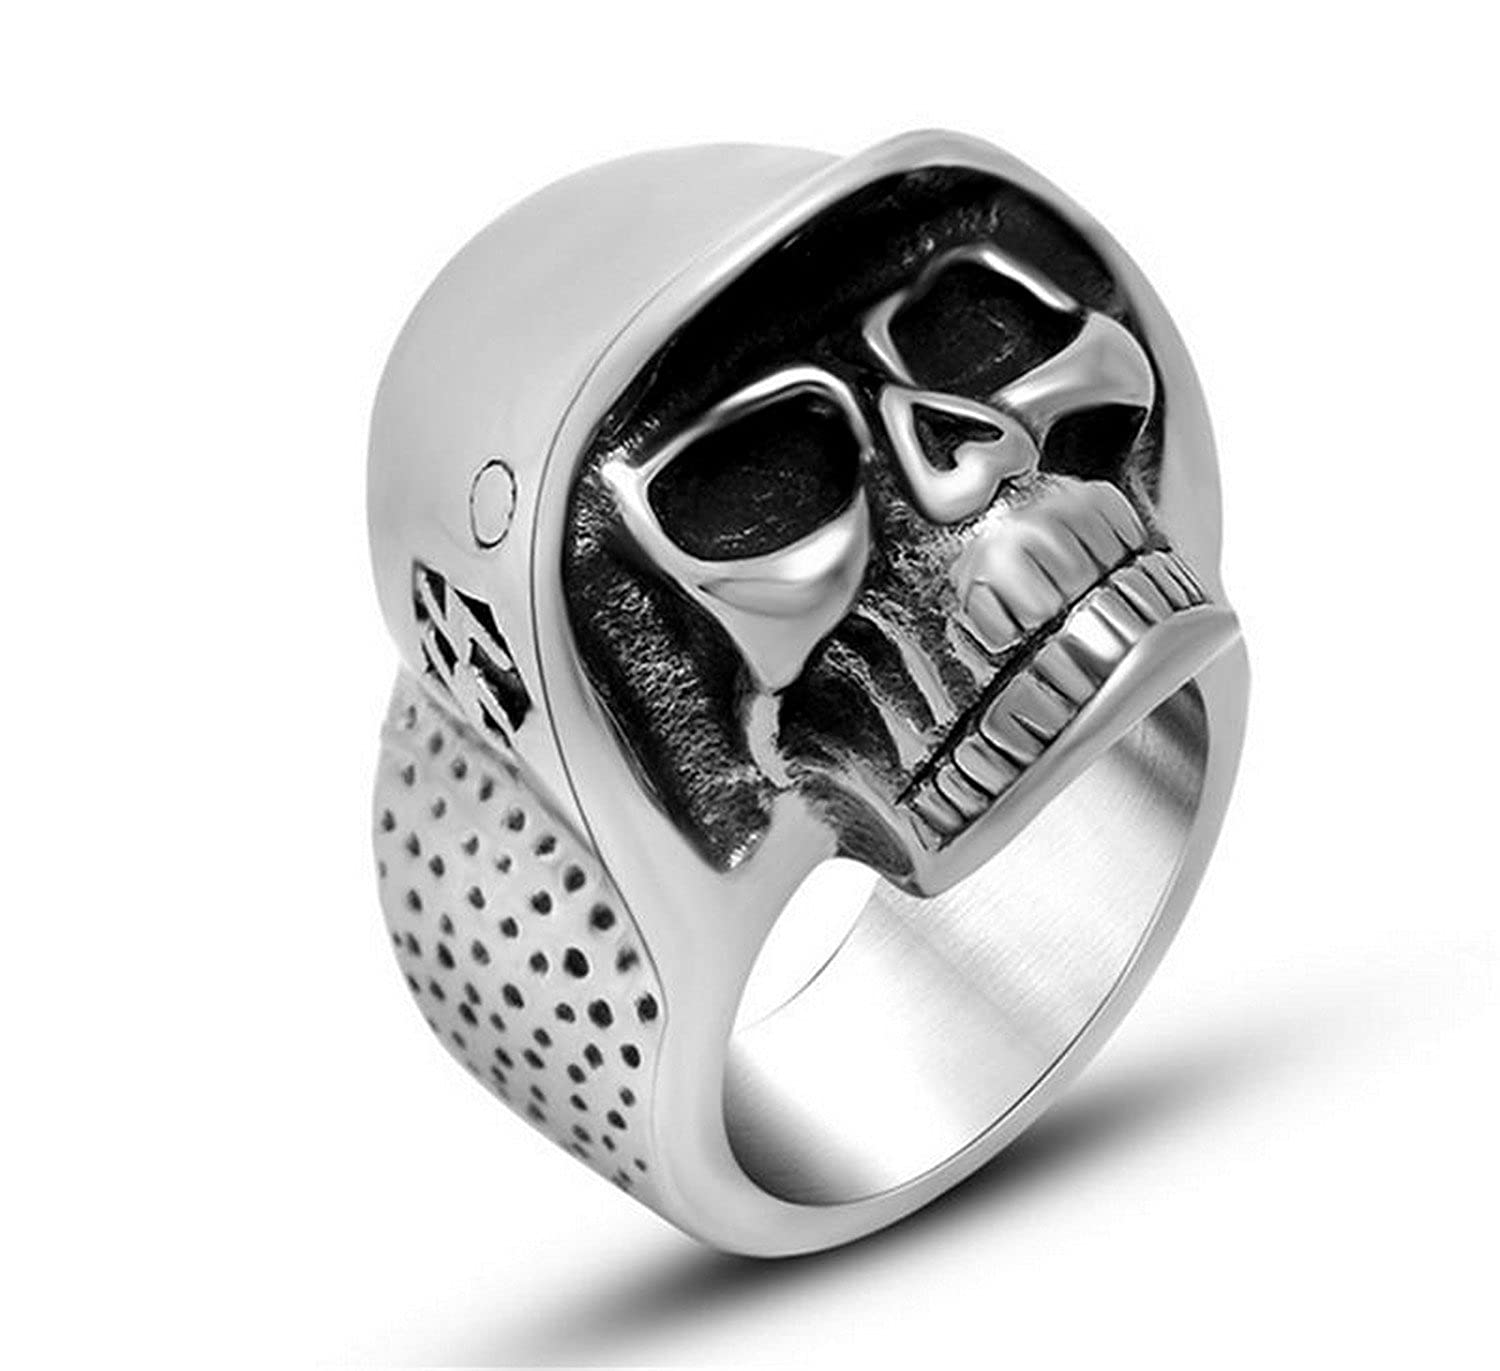 Dudee Jewelry Love Eye Silver Skull Biker Ring Stainless Steel Jewelry Classic Gothic Motor Biker Skull Ring for Men and Women